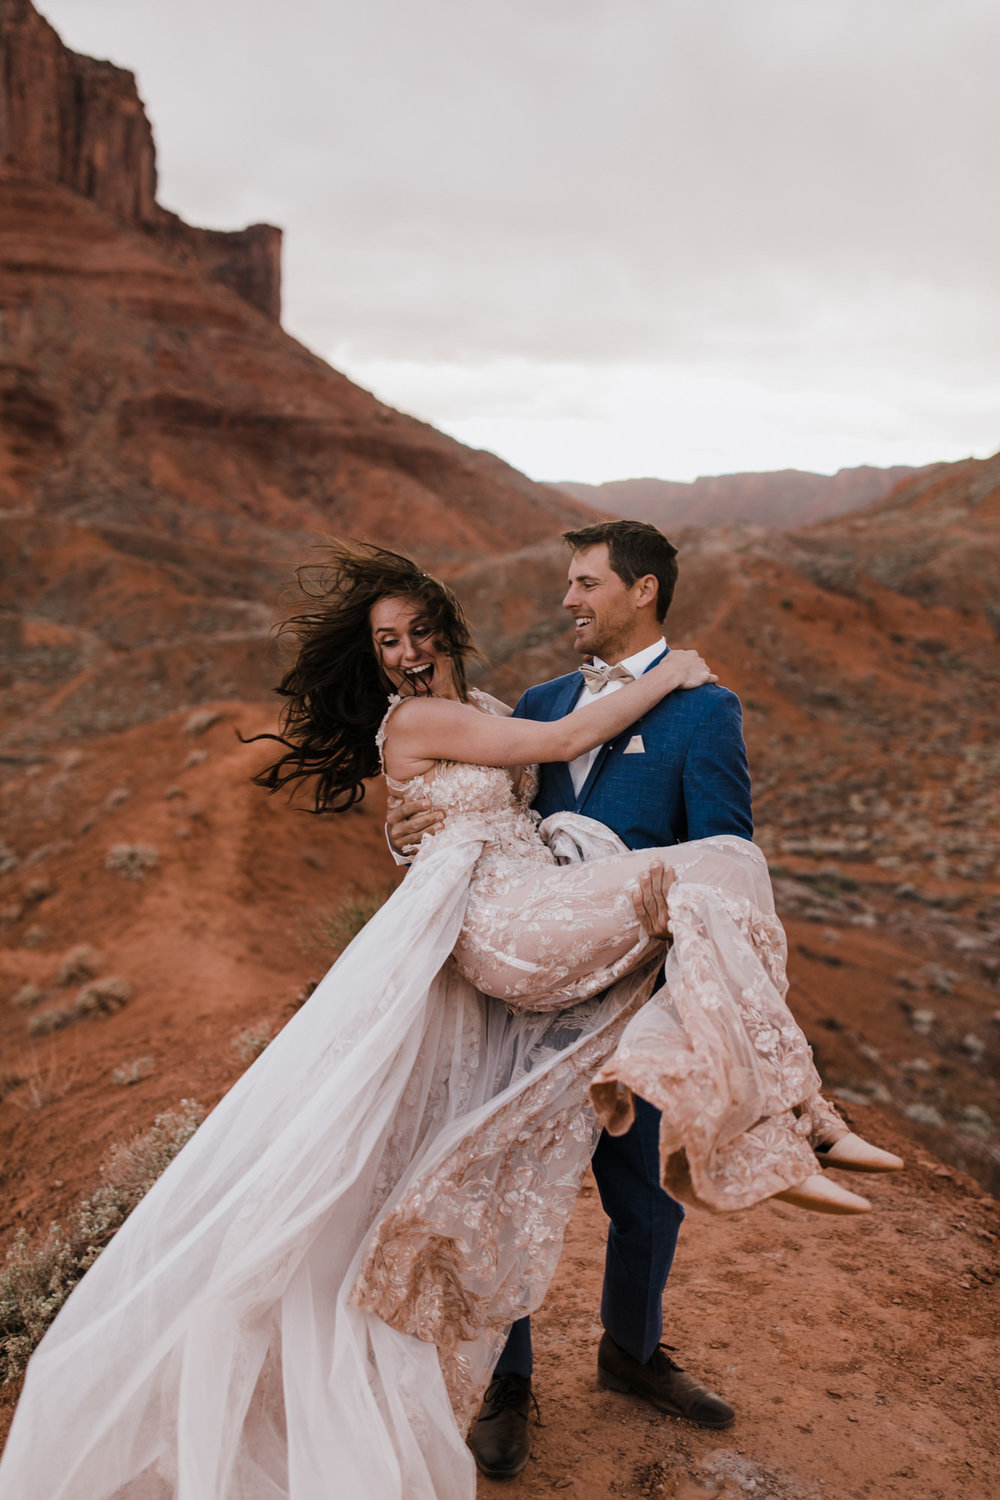 moab, utah adventure elopement | destination adventure wedding photographers | the hearnes adventure photography | www.thehearnes.com